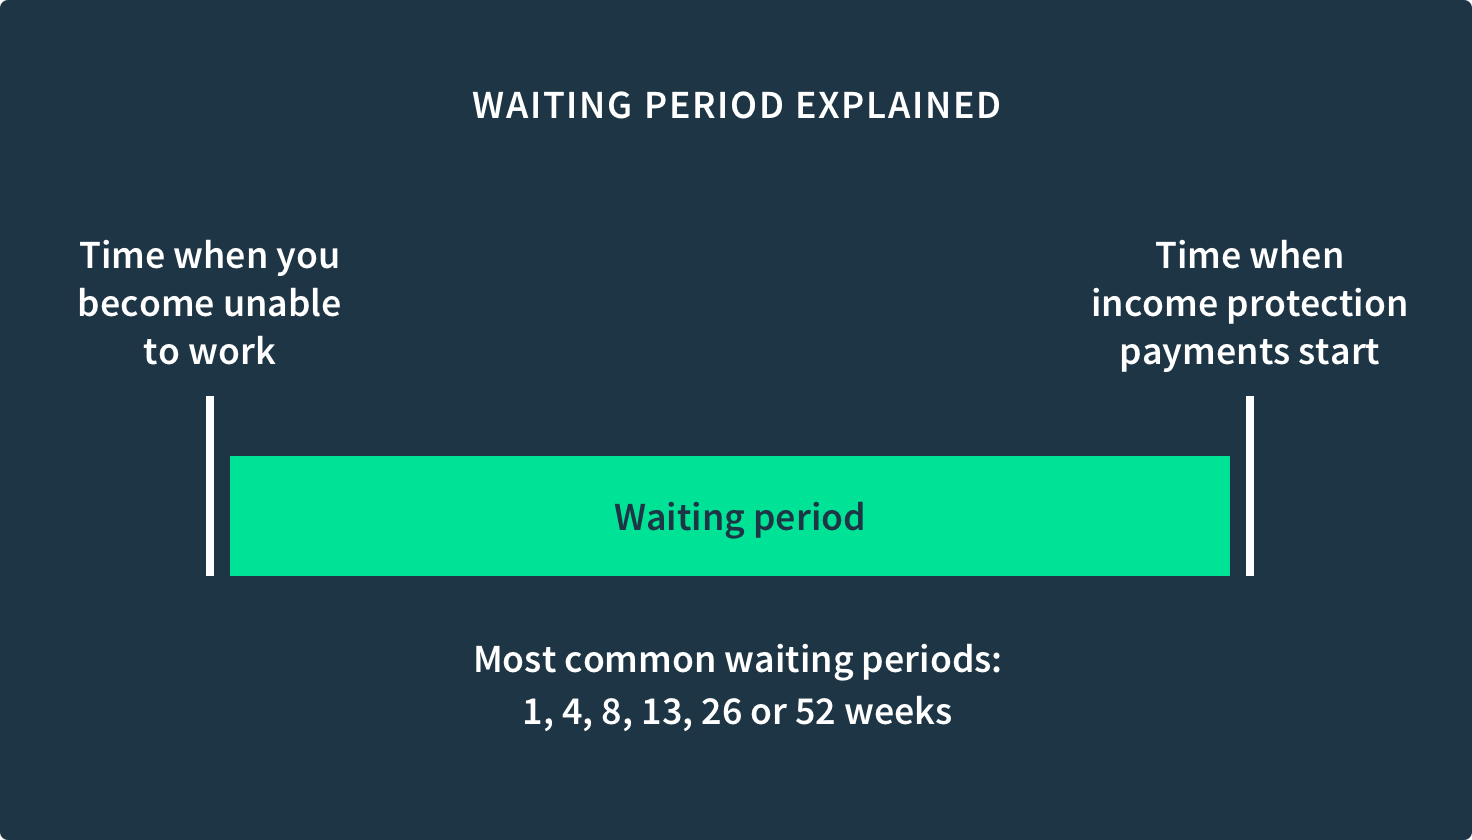 Waiting period for income protection